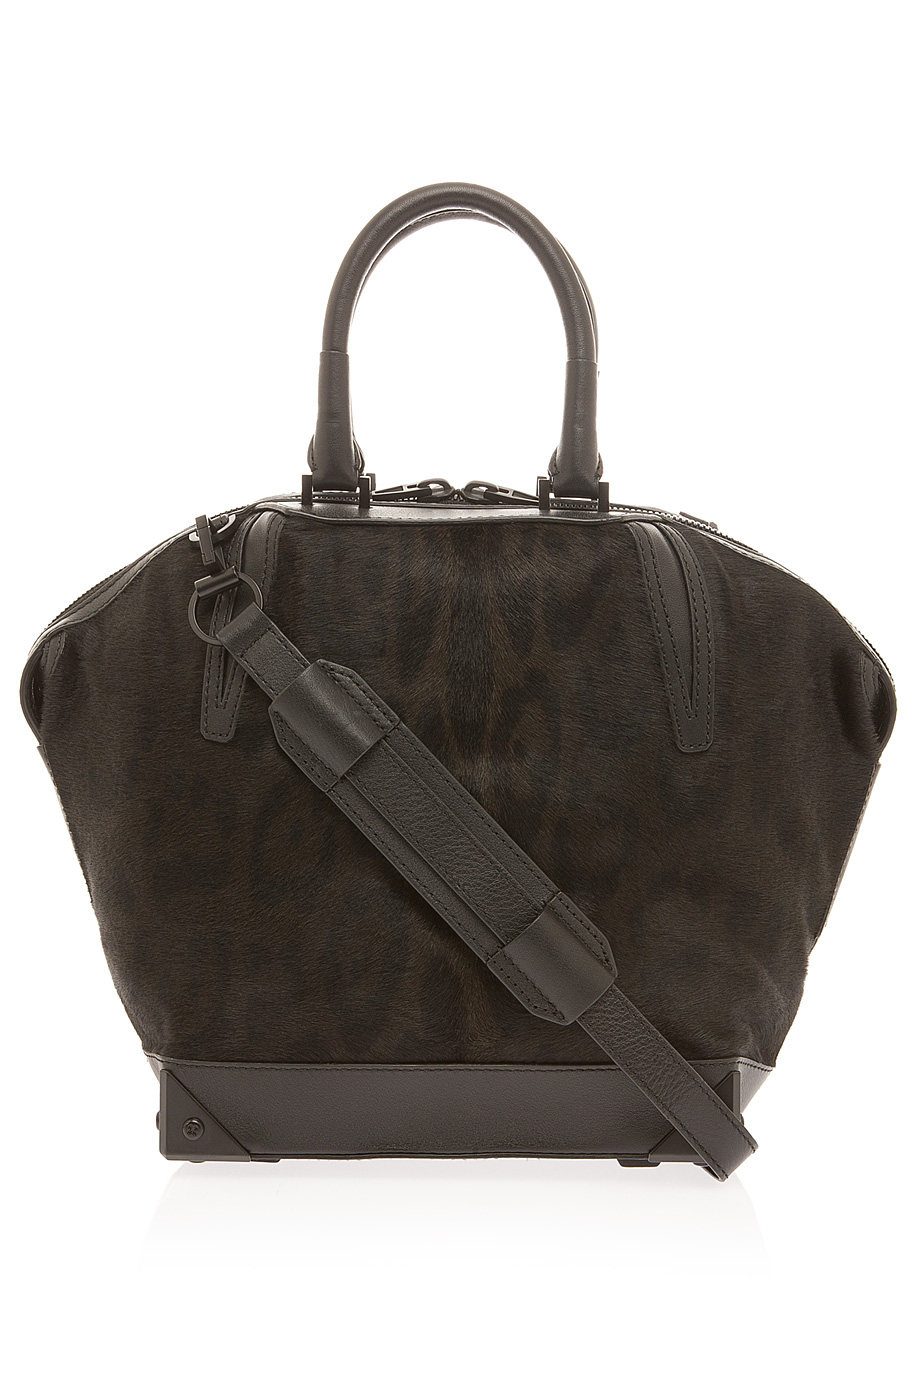 Alexander wang emile small soil leopard bag in brown lyst for Bags of topsoil